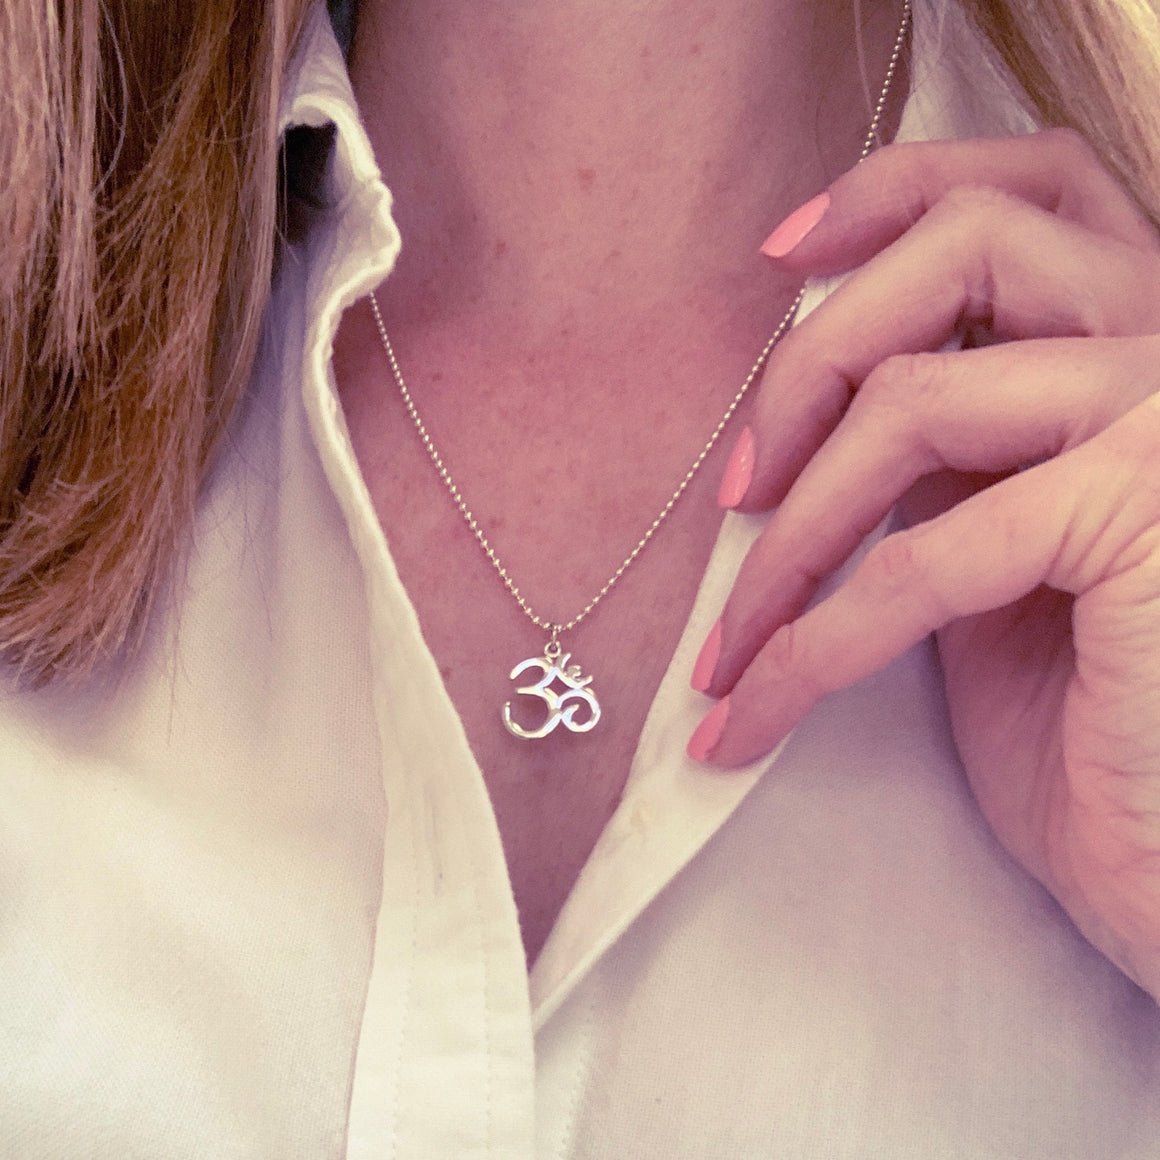 om charm on silver chain necklace, ohm charm, yoga jewelry